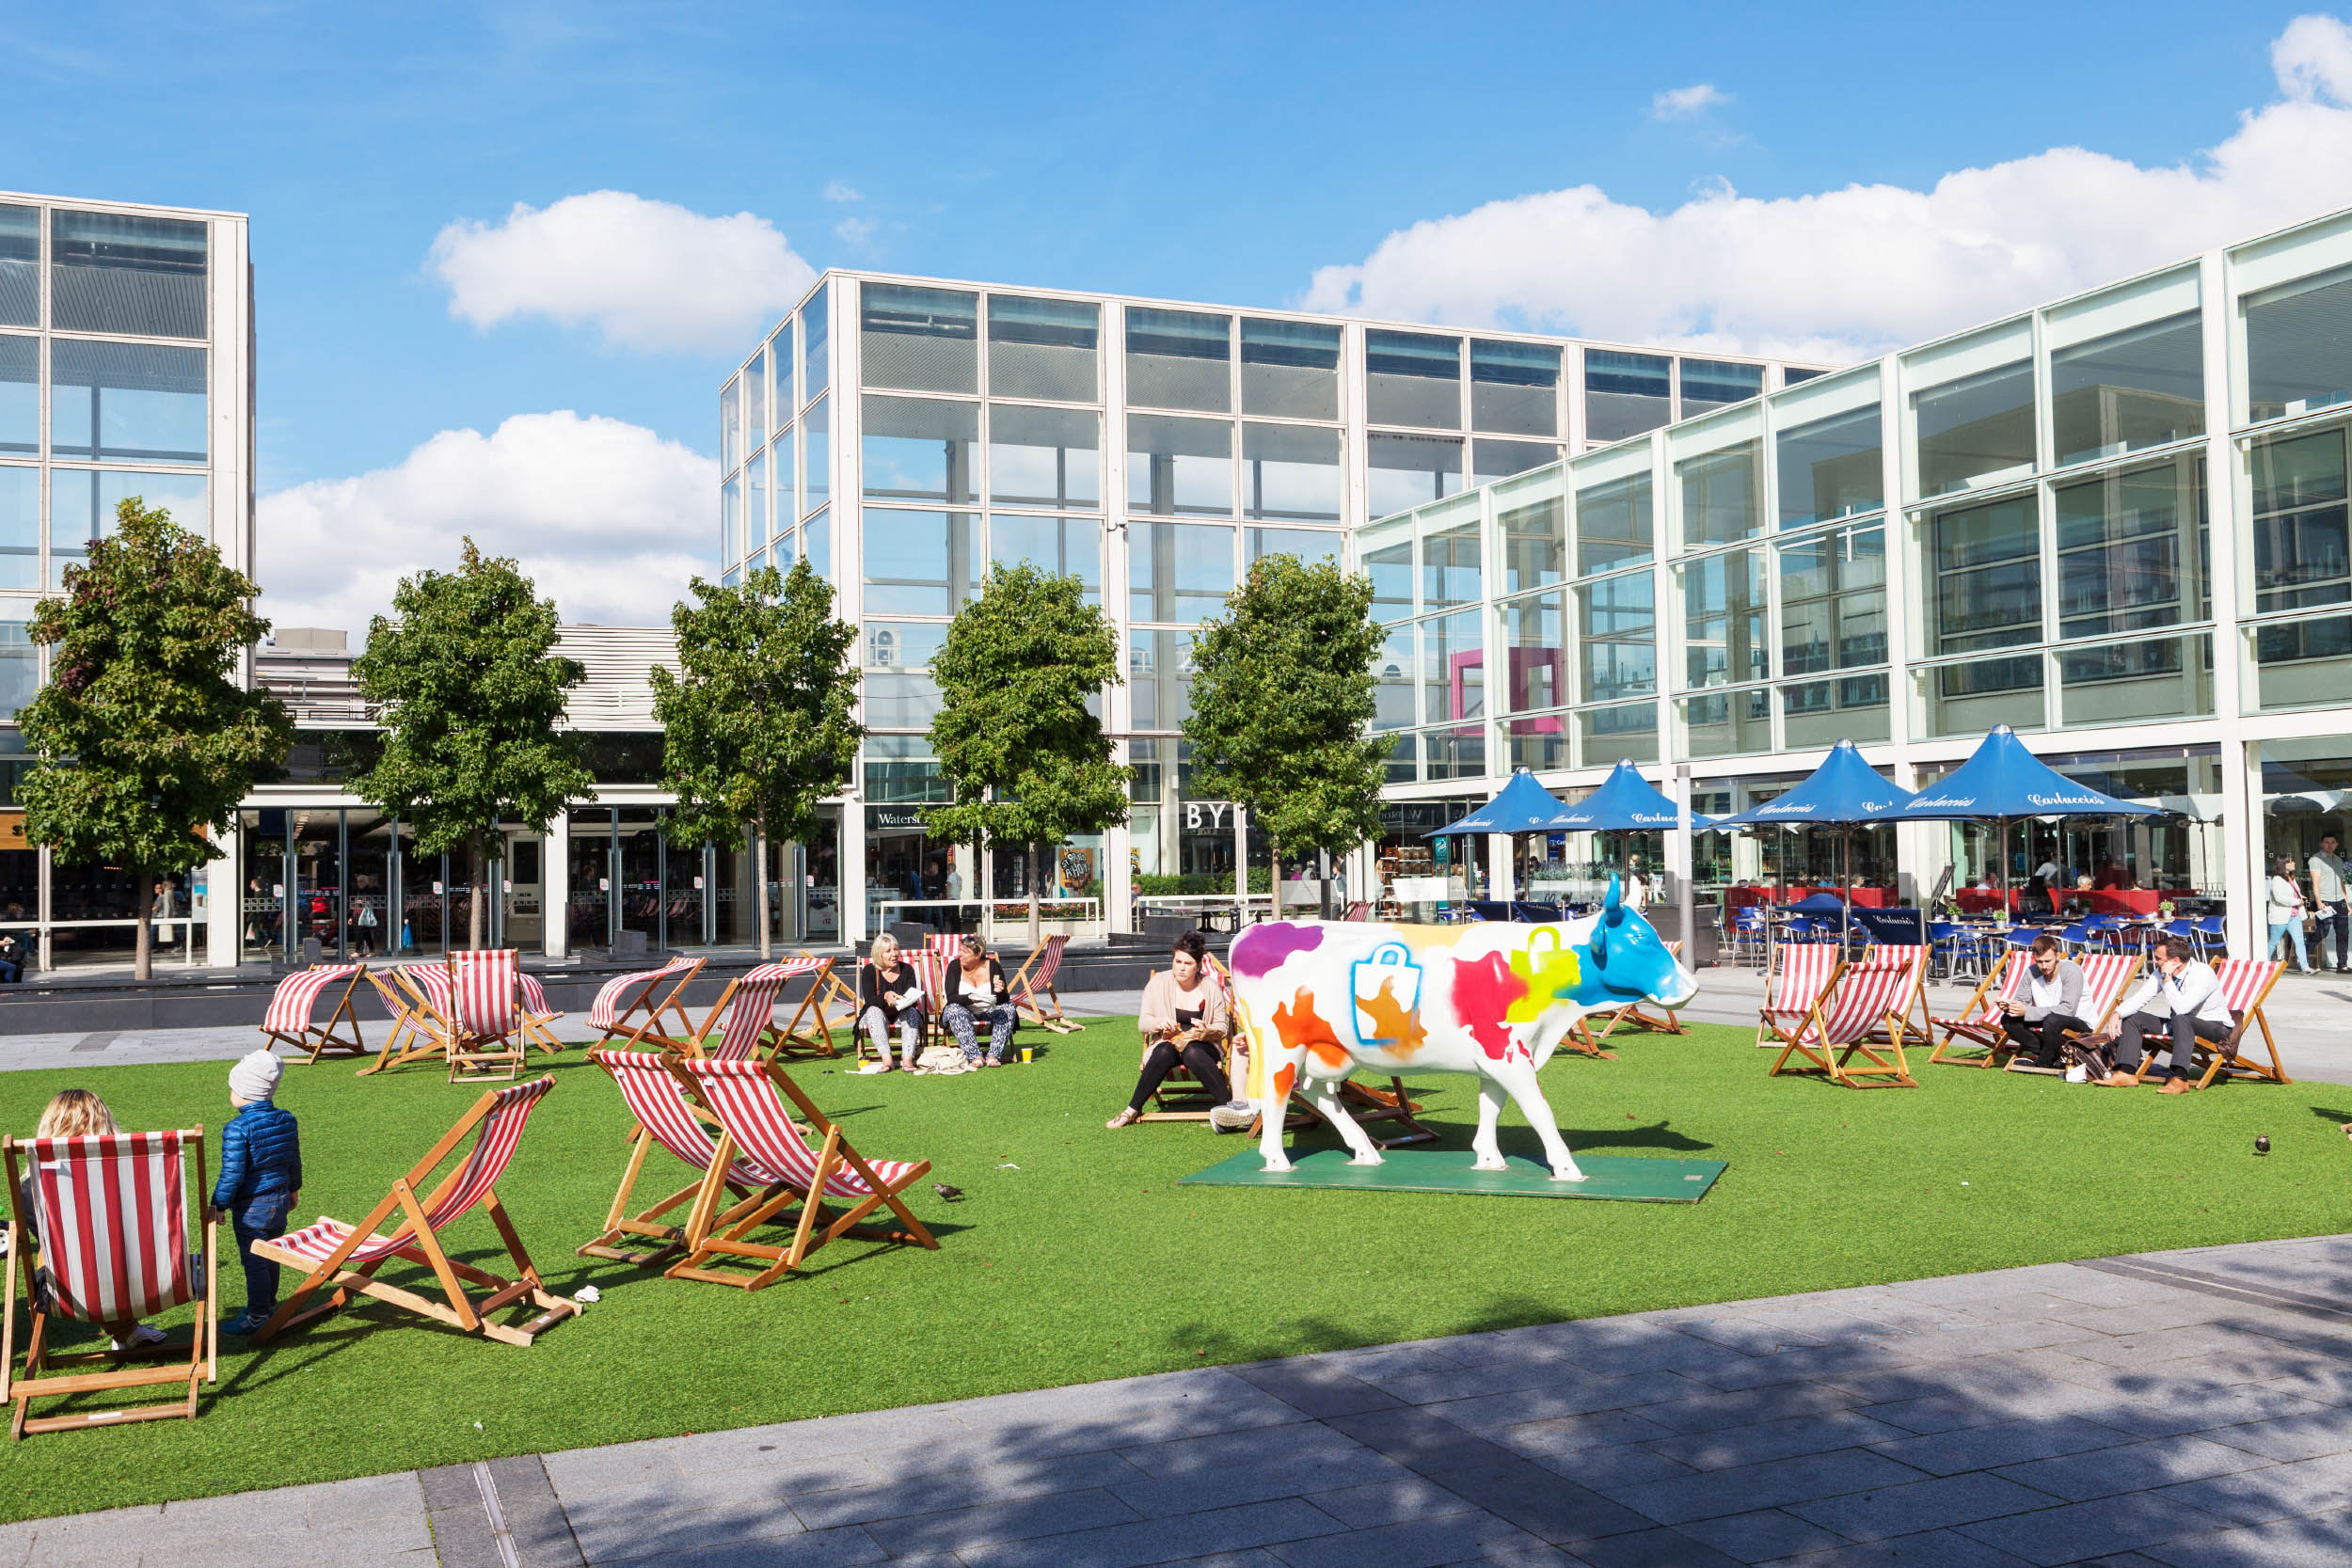 sunbathers at milton keynes shopping centre with colourful cow sculpture